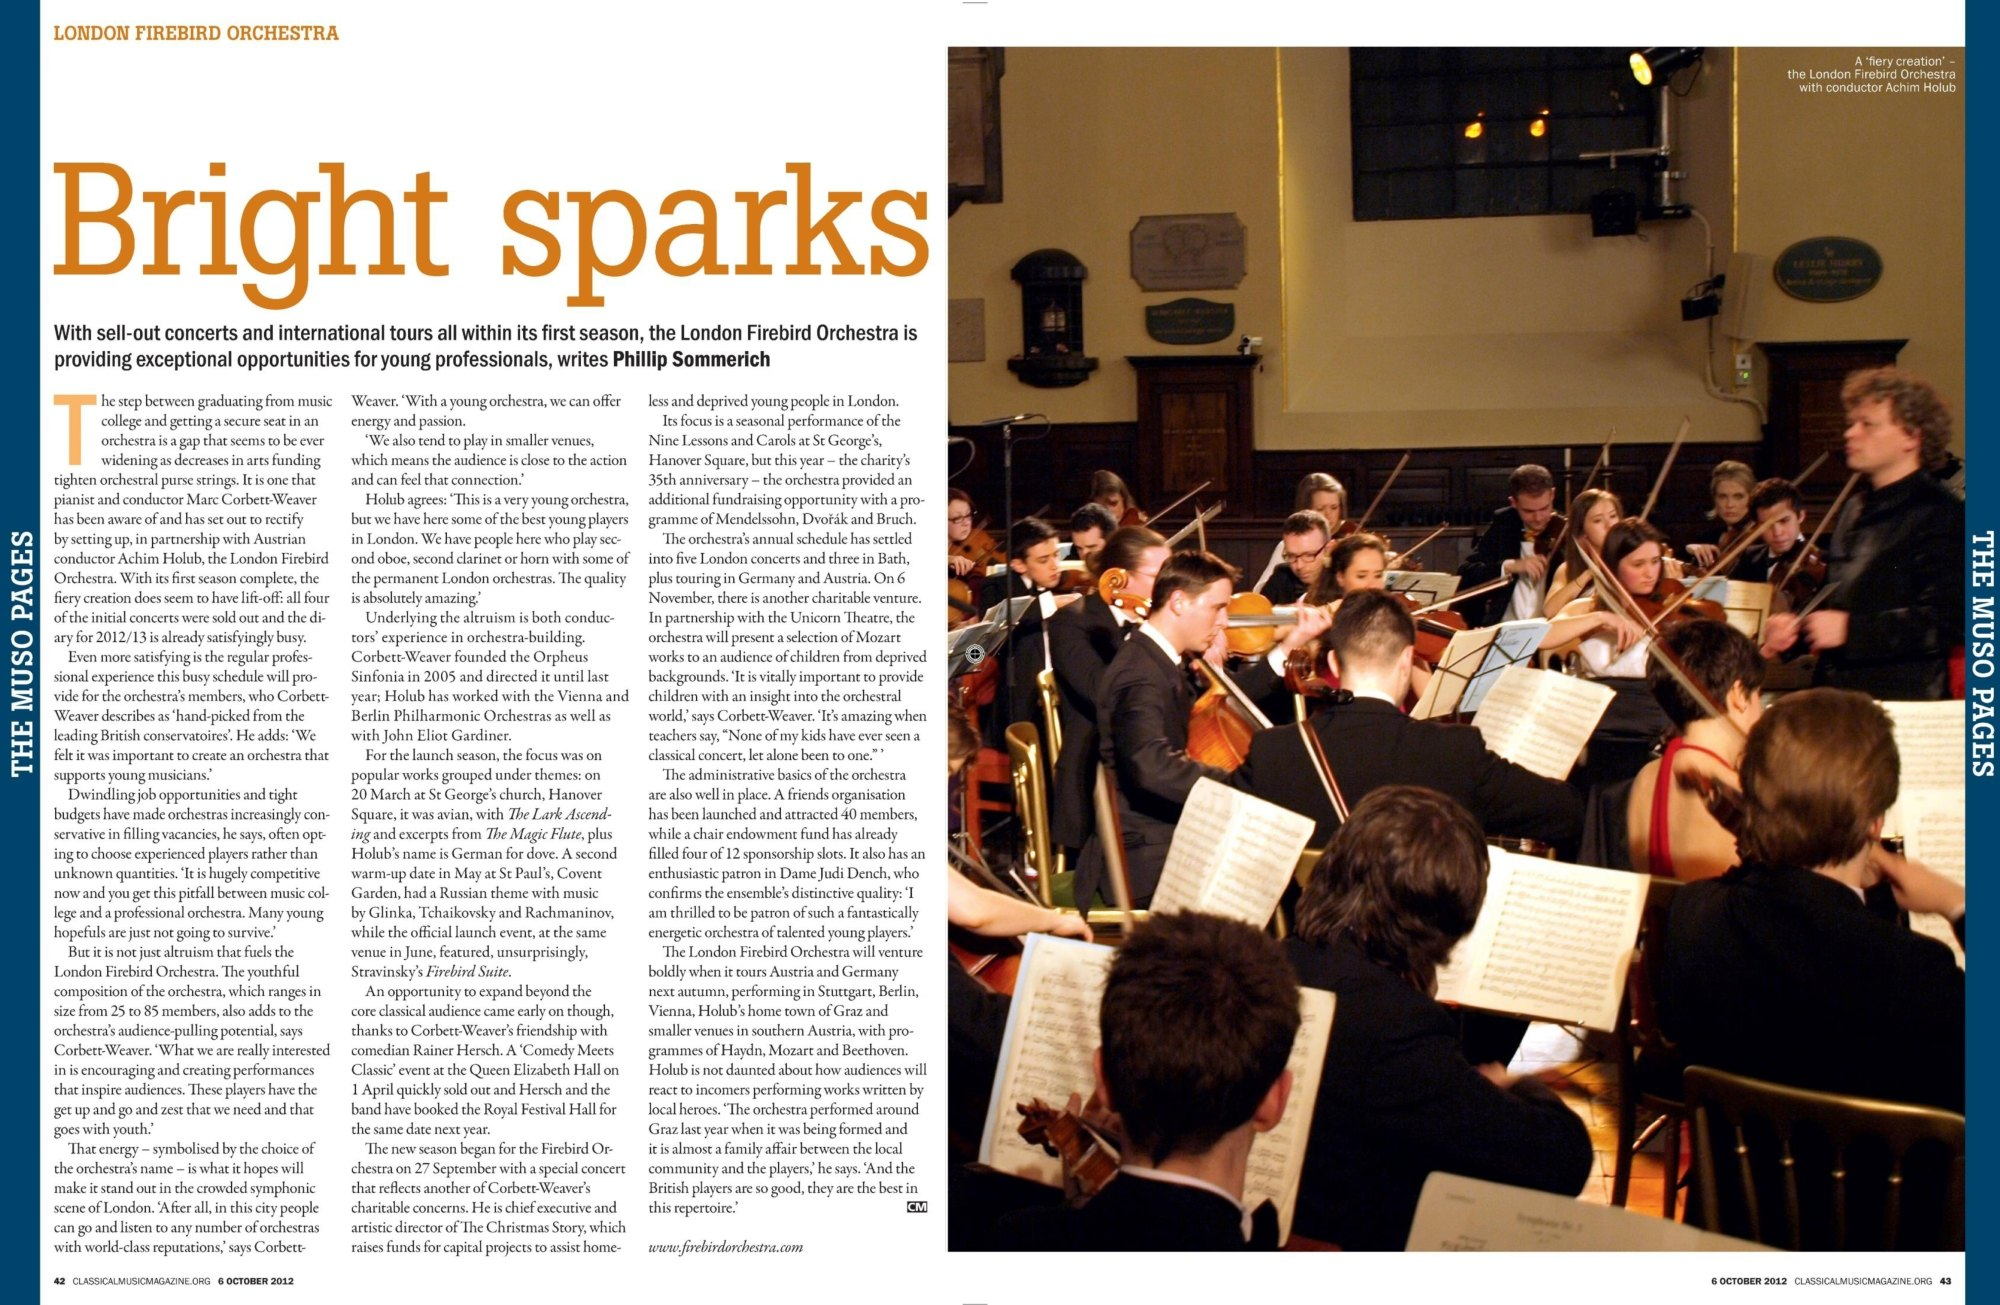 Classical Music Magazine Oct'12 [Pages 1+2 - cropped] 2000x1305 reduced.jpg